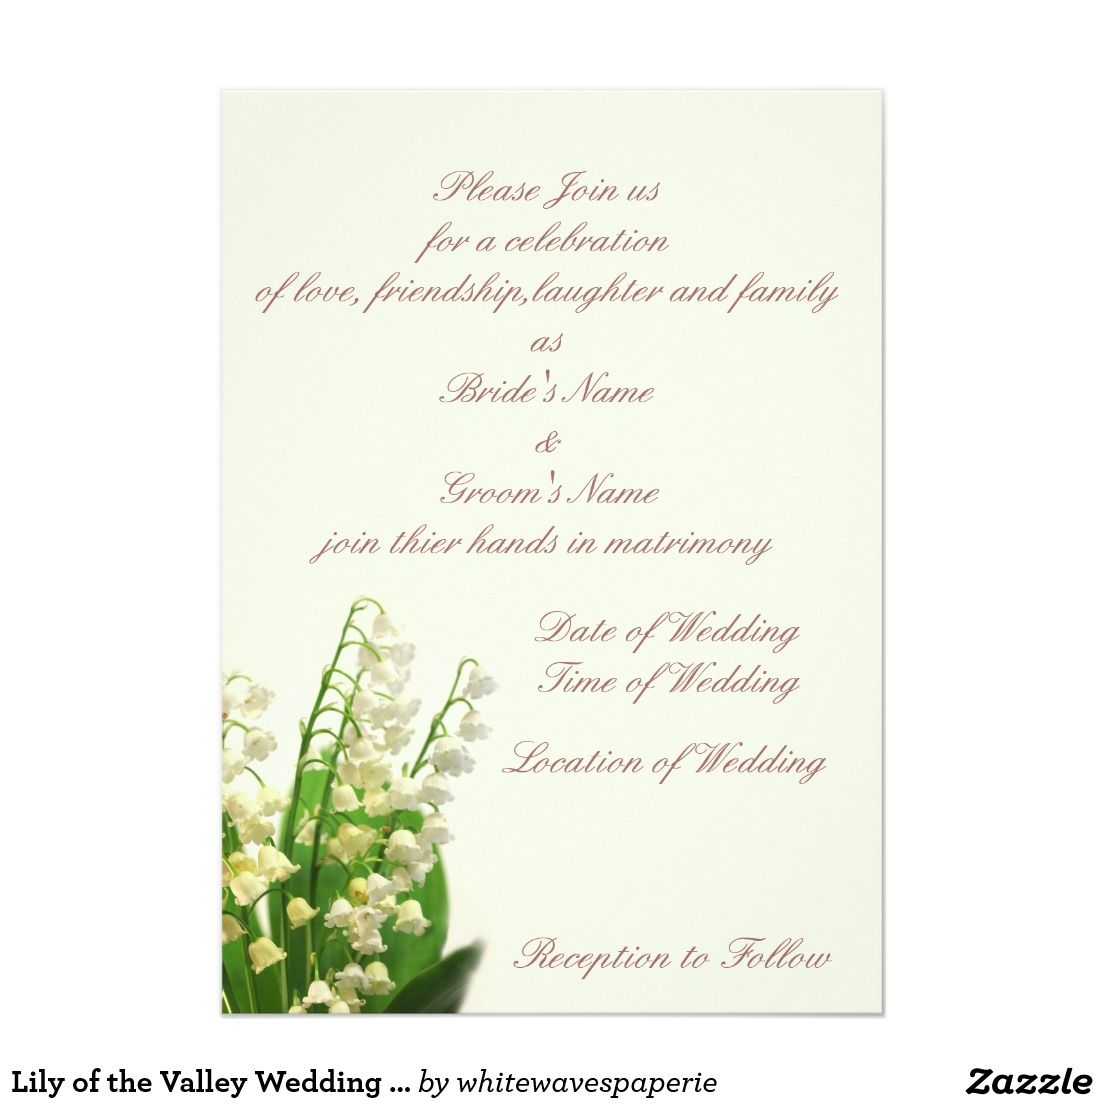 Lily of the Valley Wedding Invitation | Weddings